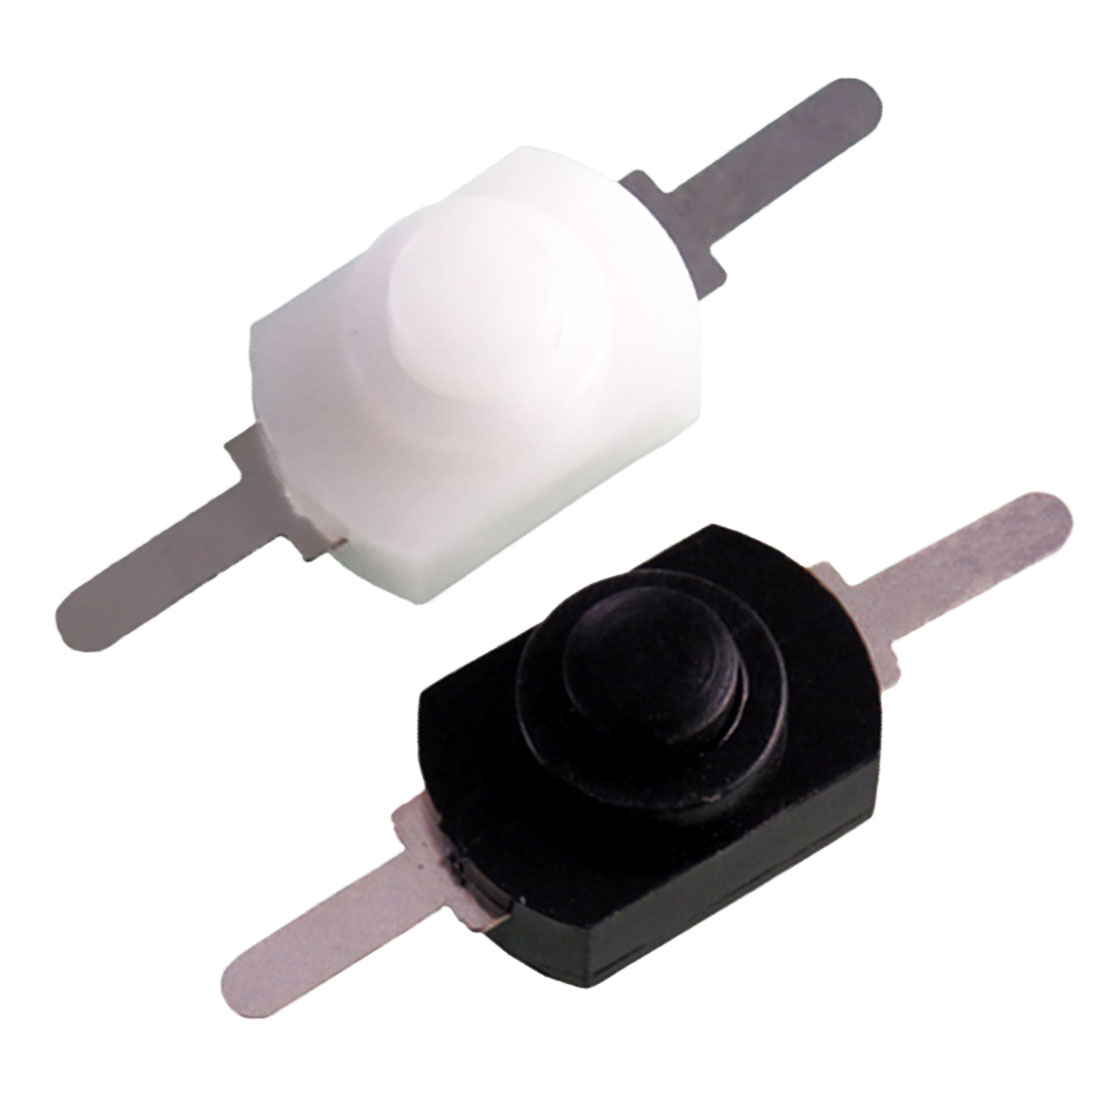 Hot Sale 1pc/5pcs/10pcs1A 30V DC 250V White/Black Latching On Off Mini Torch Push Button Switch